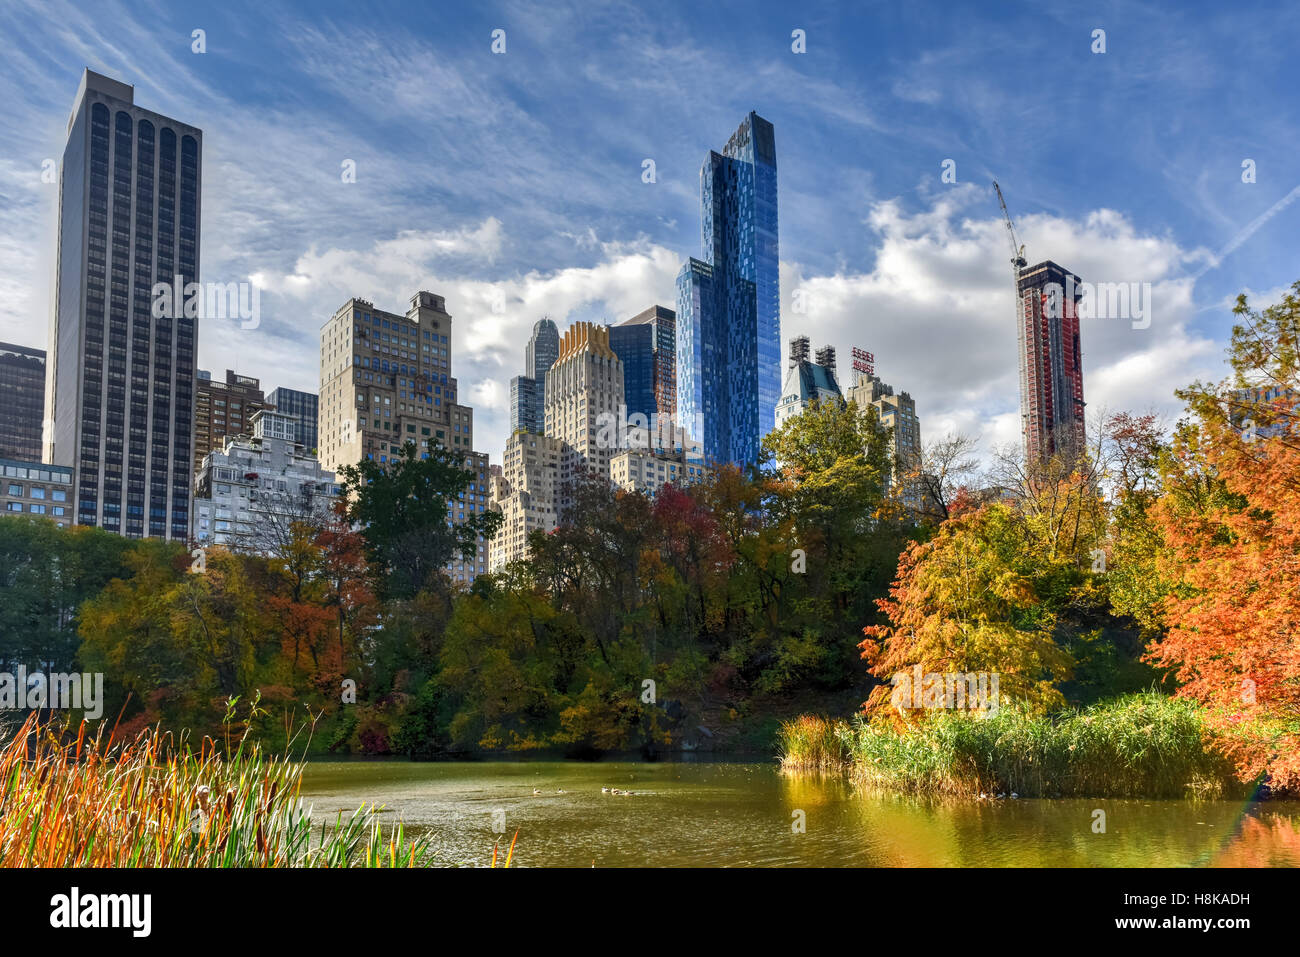 View of Central Park South in New York City in the Autumn. - Stock Image